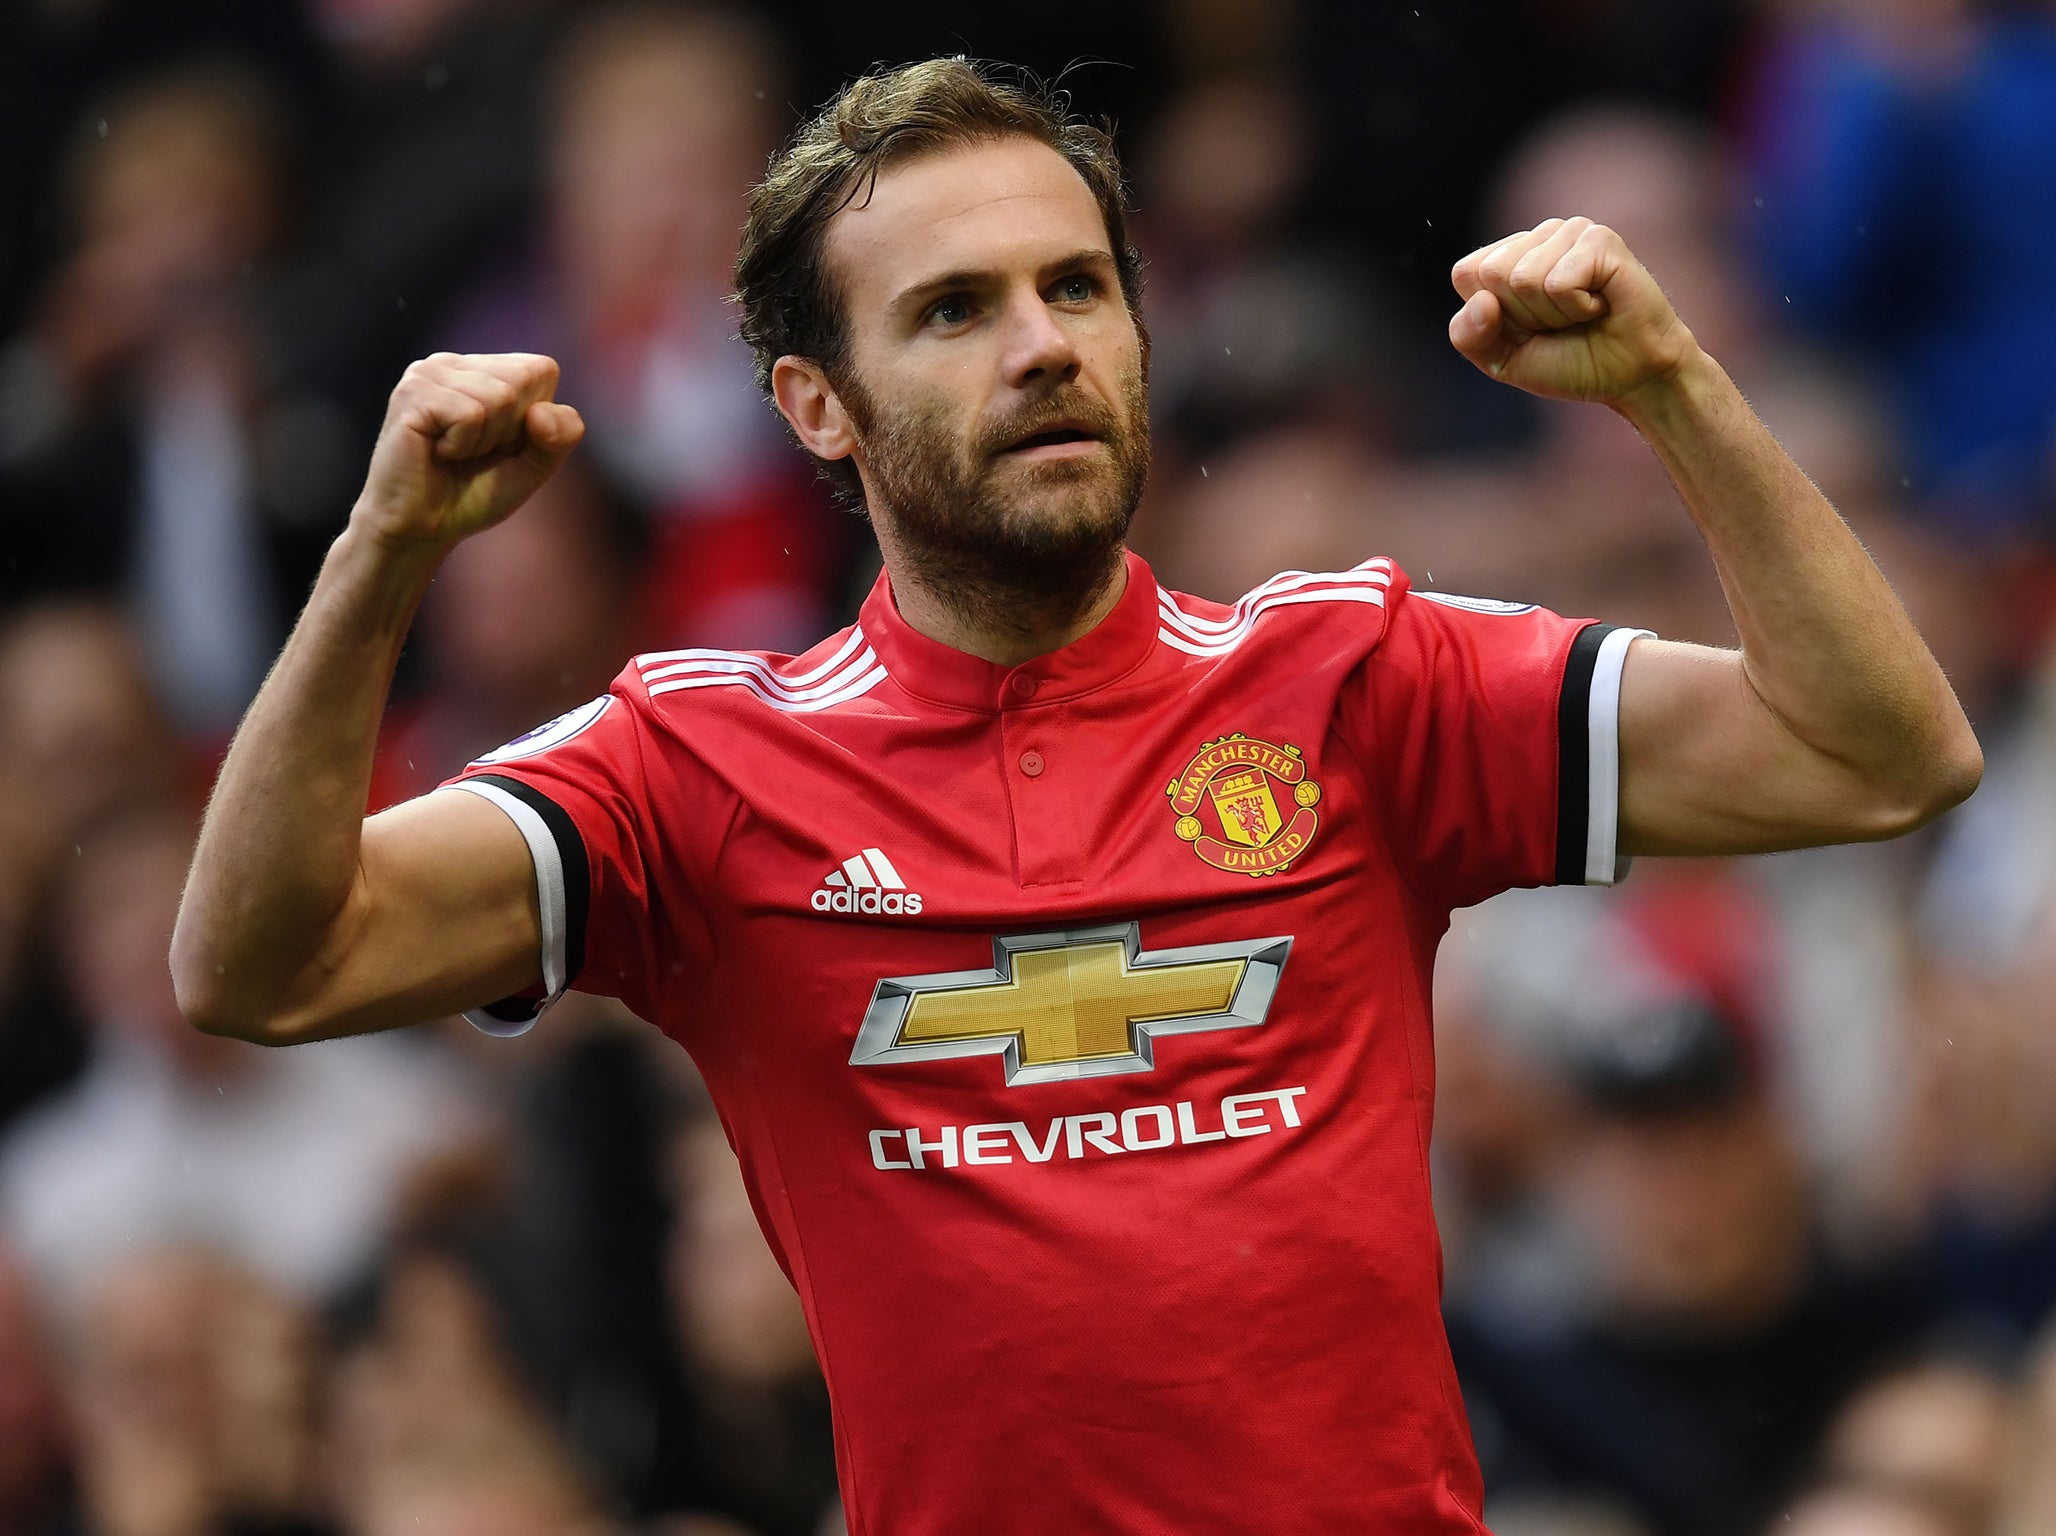 Premier League pair set to join Manchester United star Juan Mata